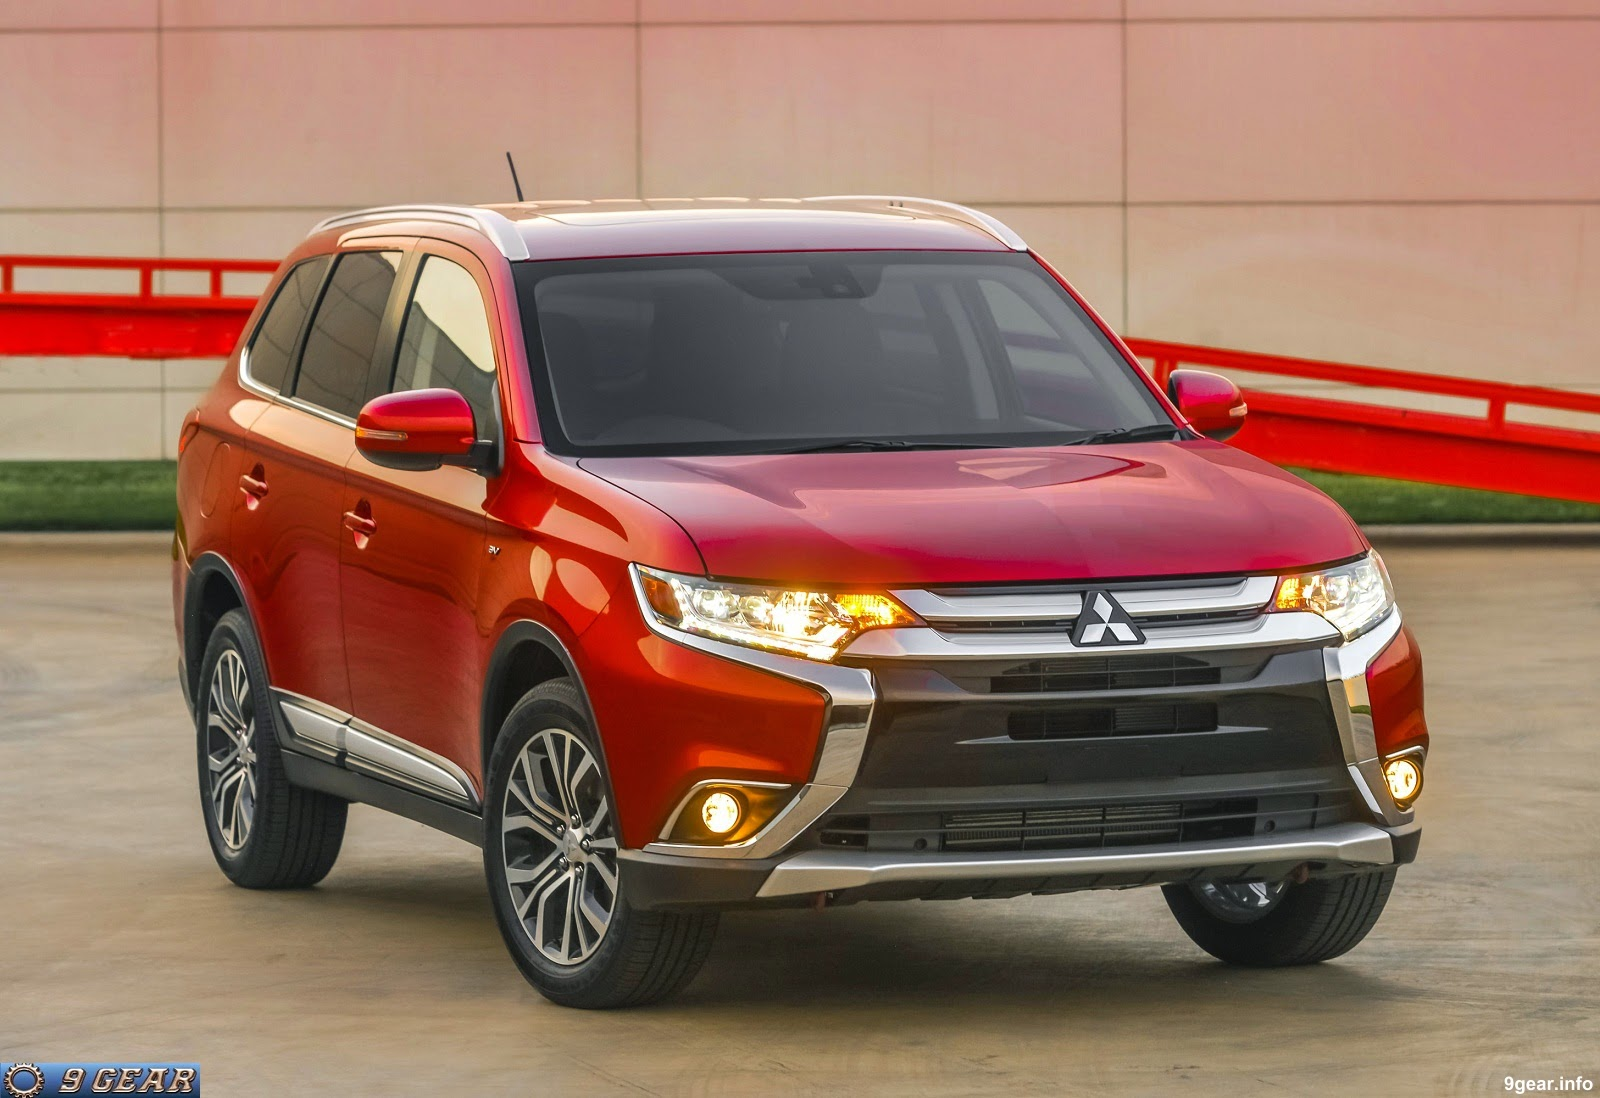 mitsubishi unveiled the 2016 outlander crossover car reviews new car pictures for 2018 2019. Black Bedroom Furniture Sets. Home Design Ideas